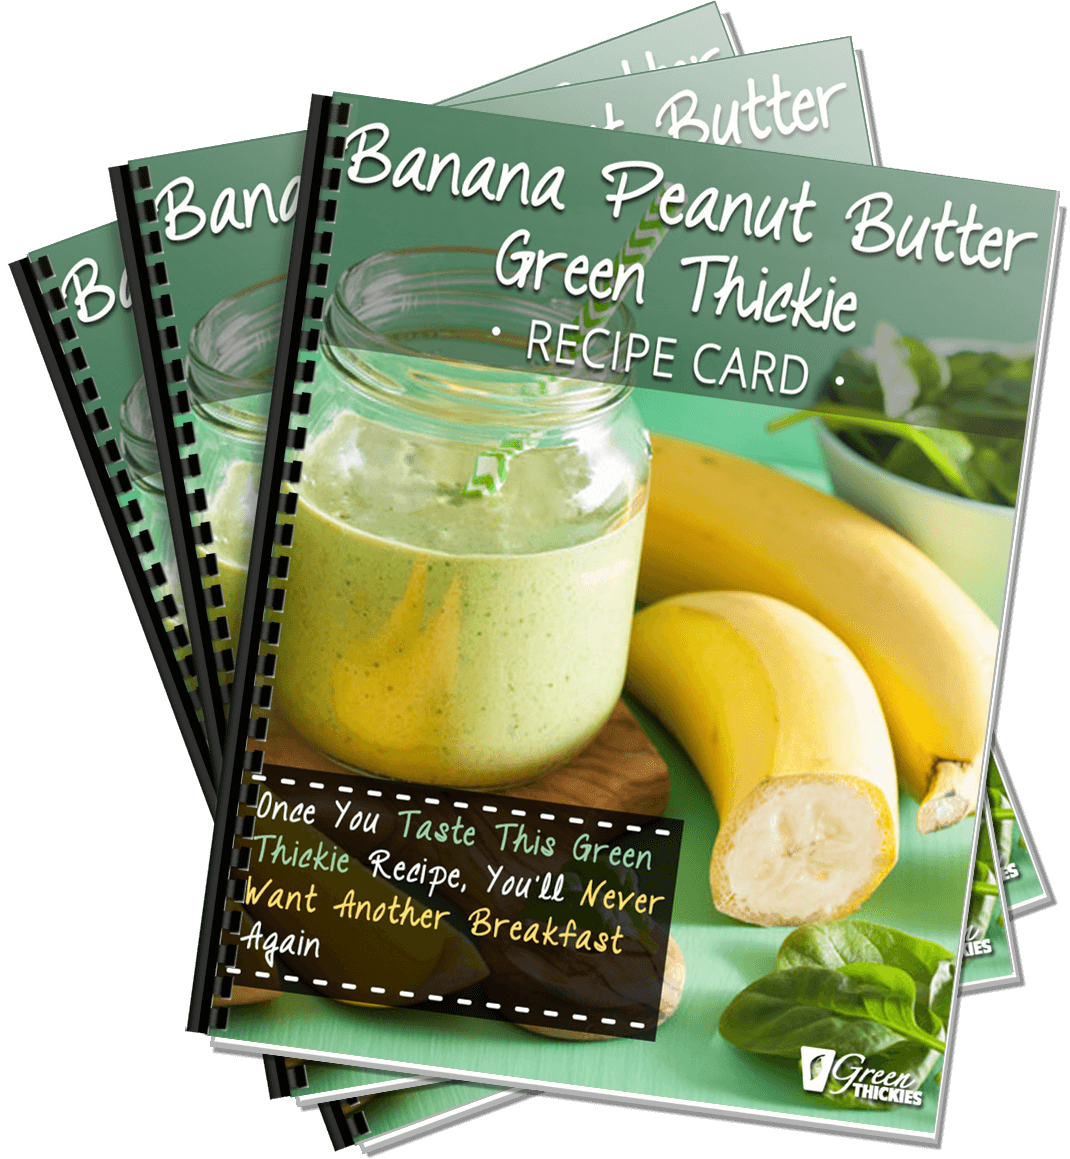 Banana Peanut Butter Green Thickie Recipe Card